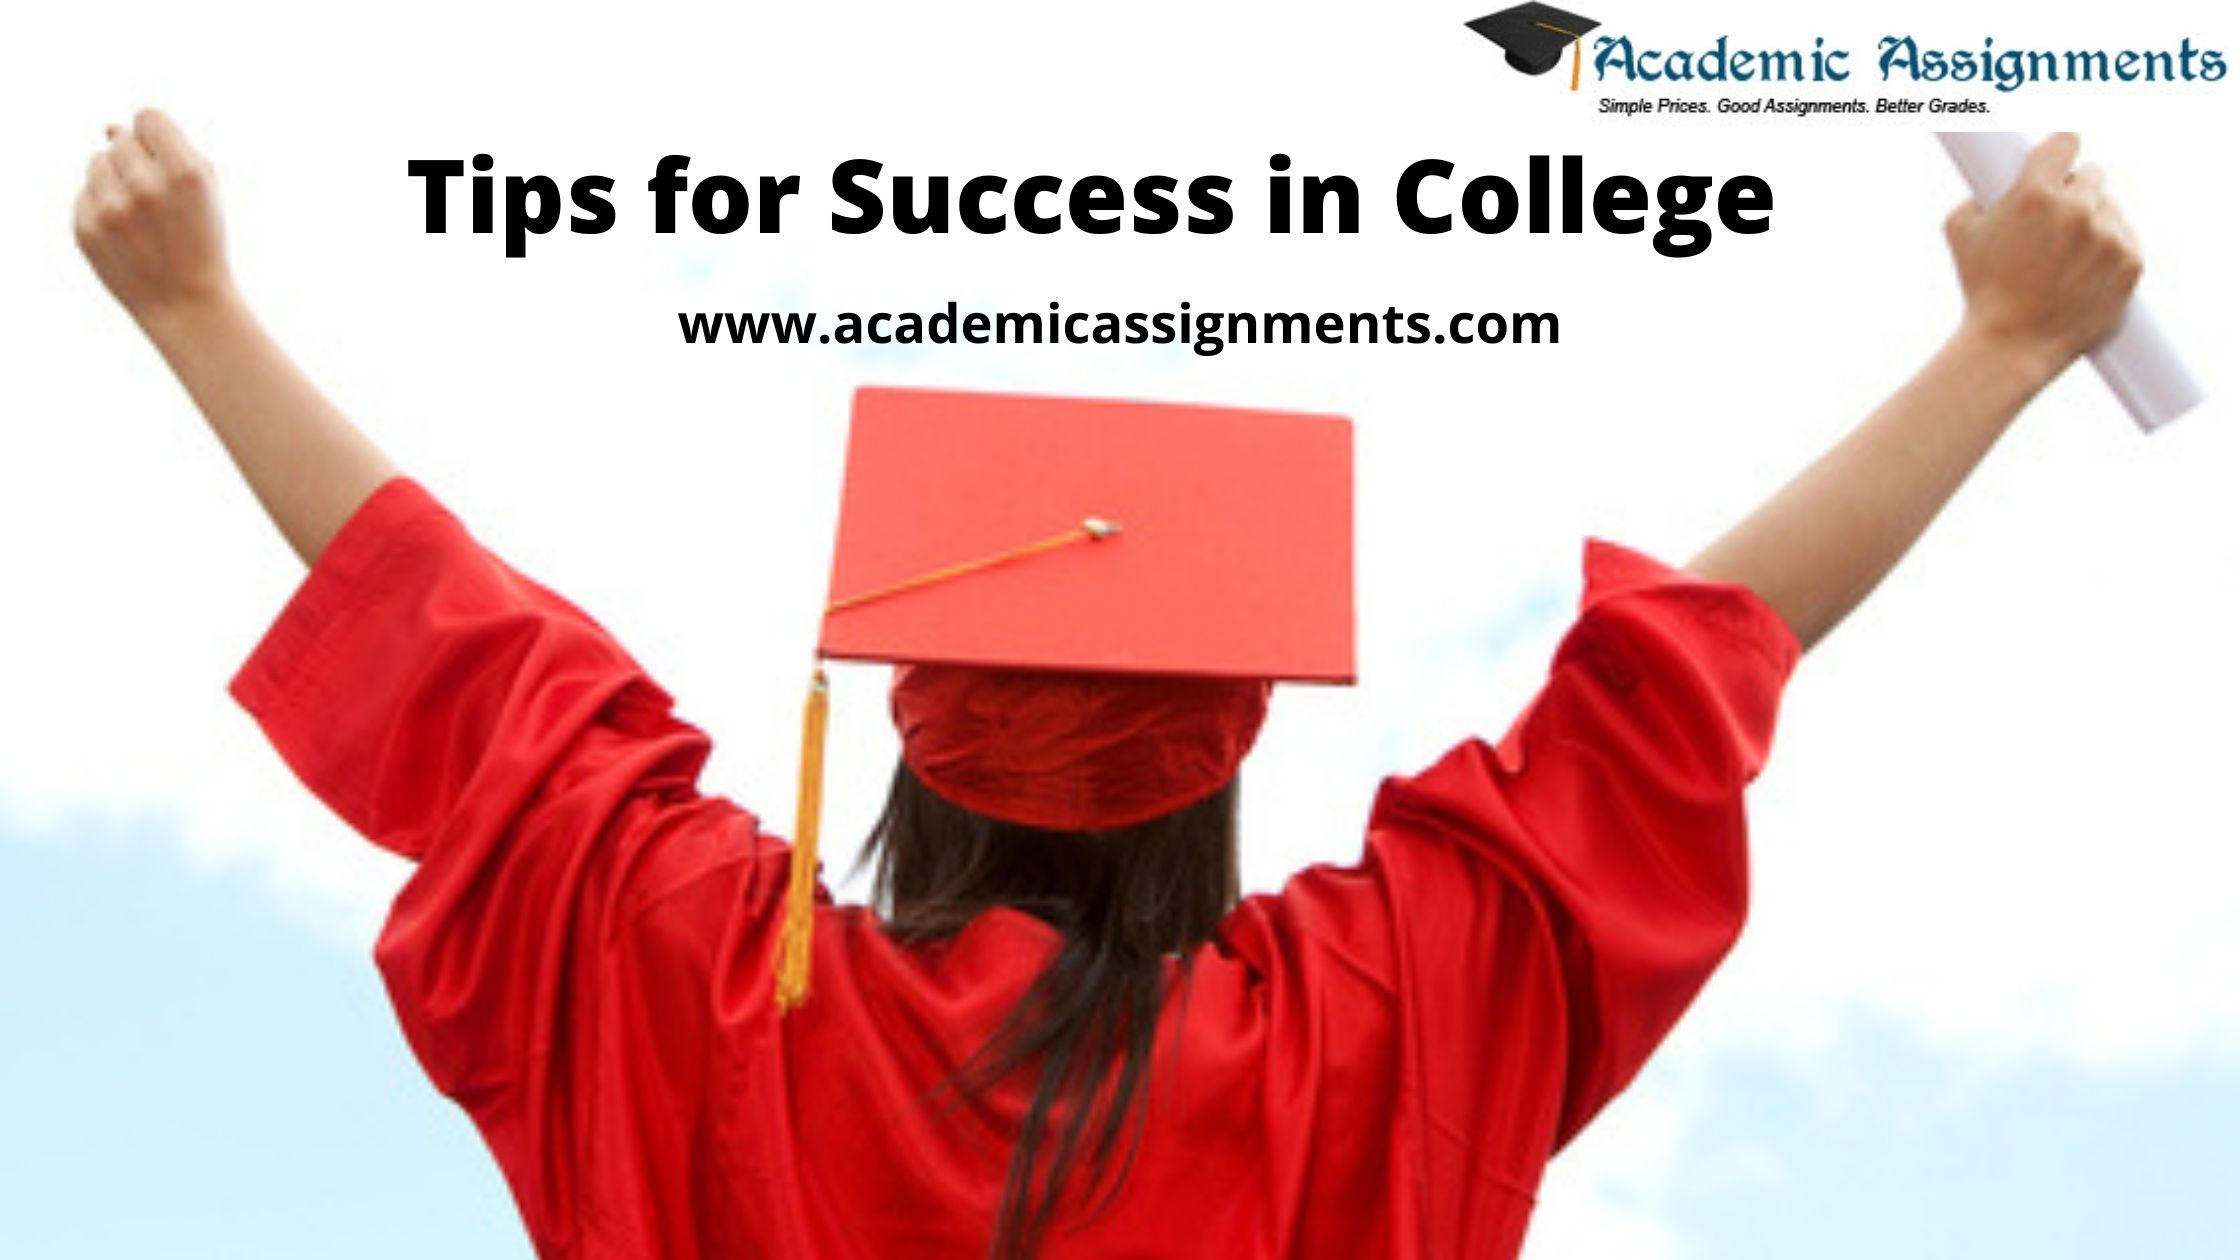 Tips for Success in College